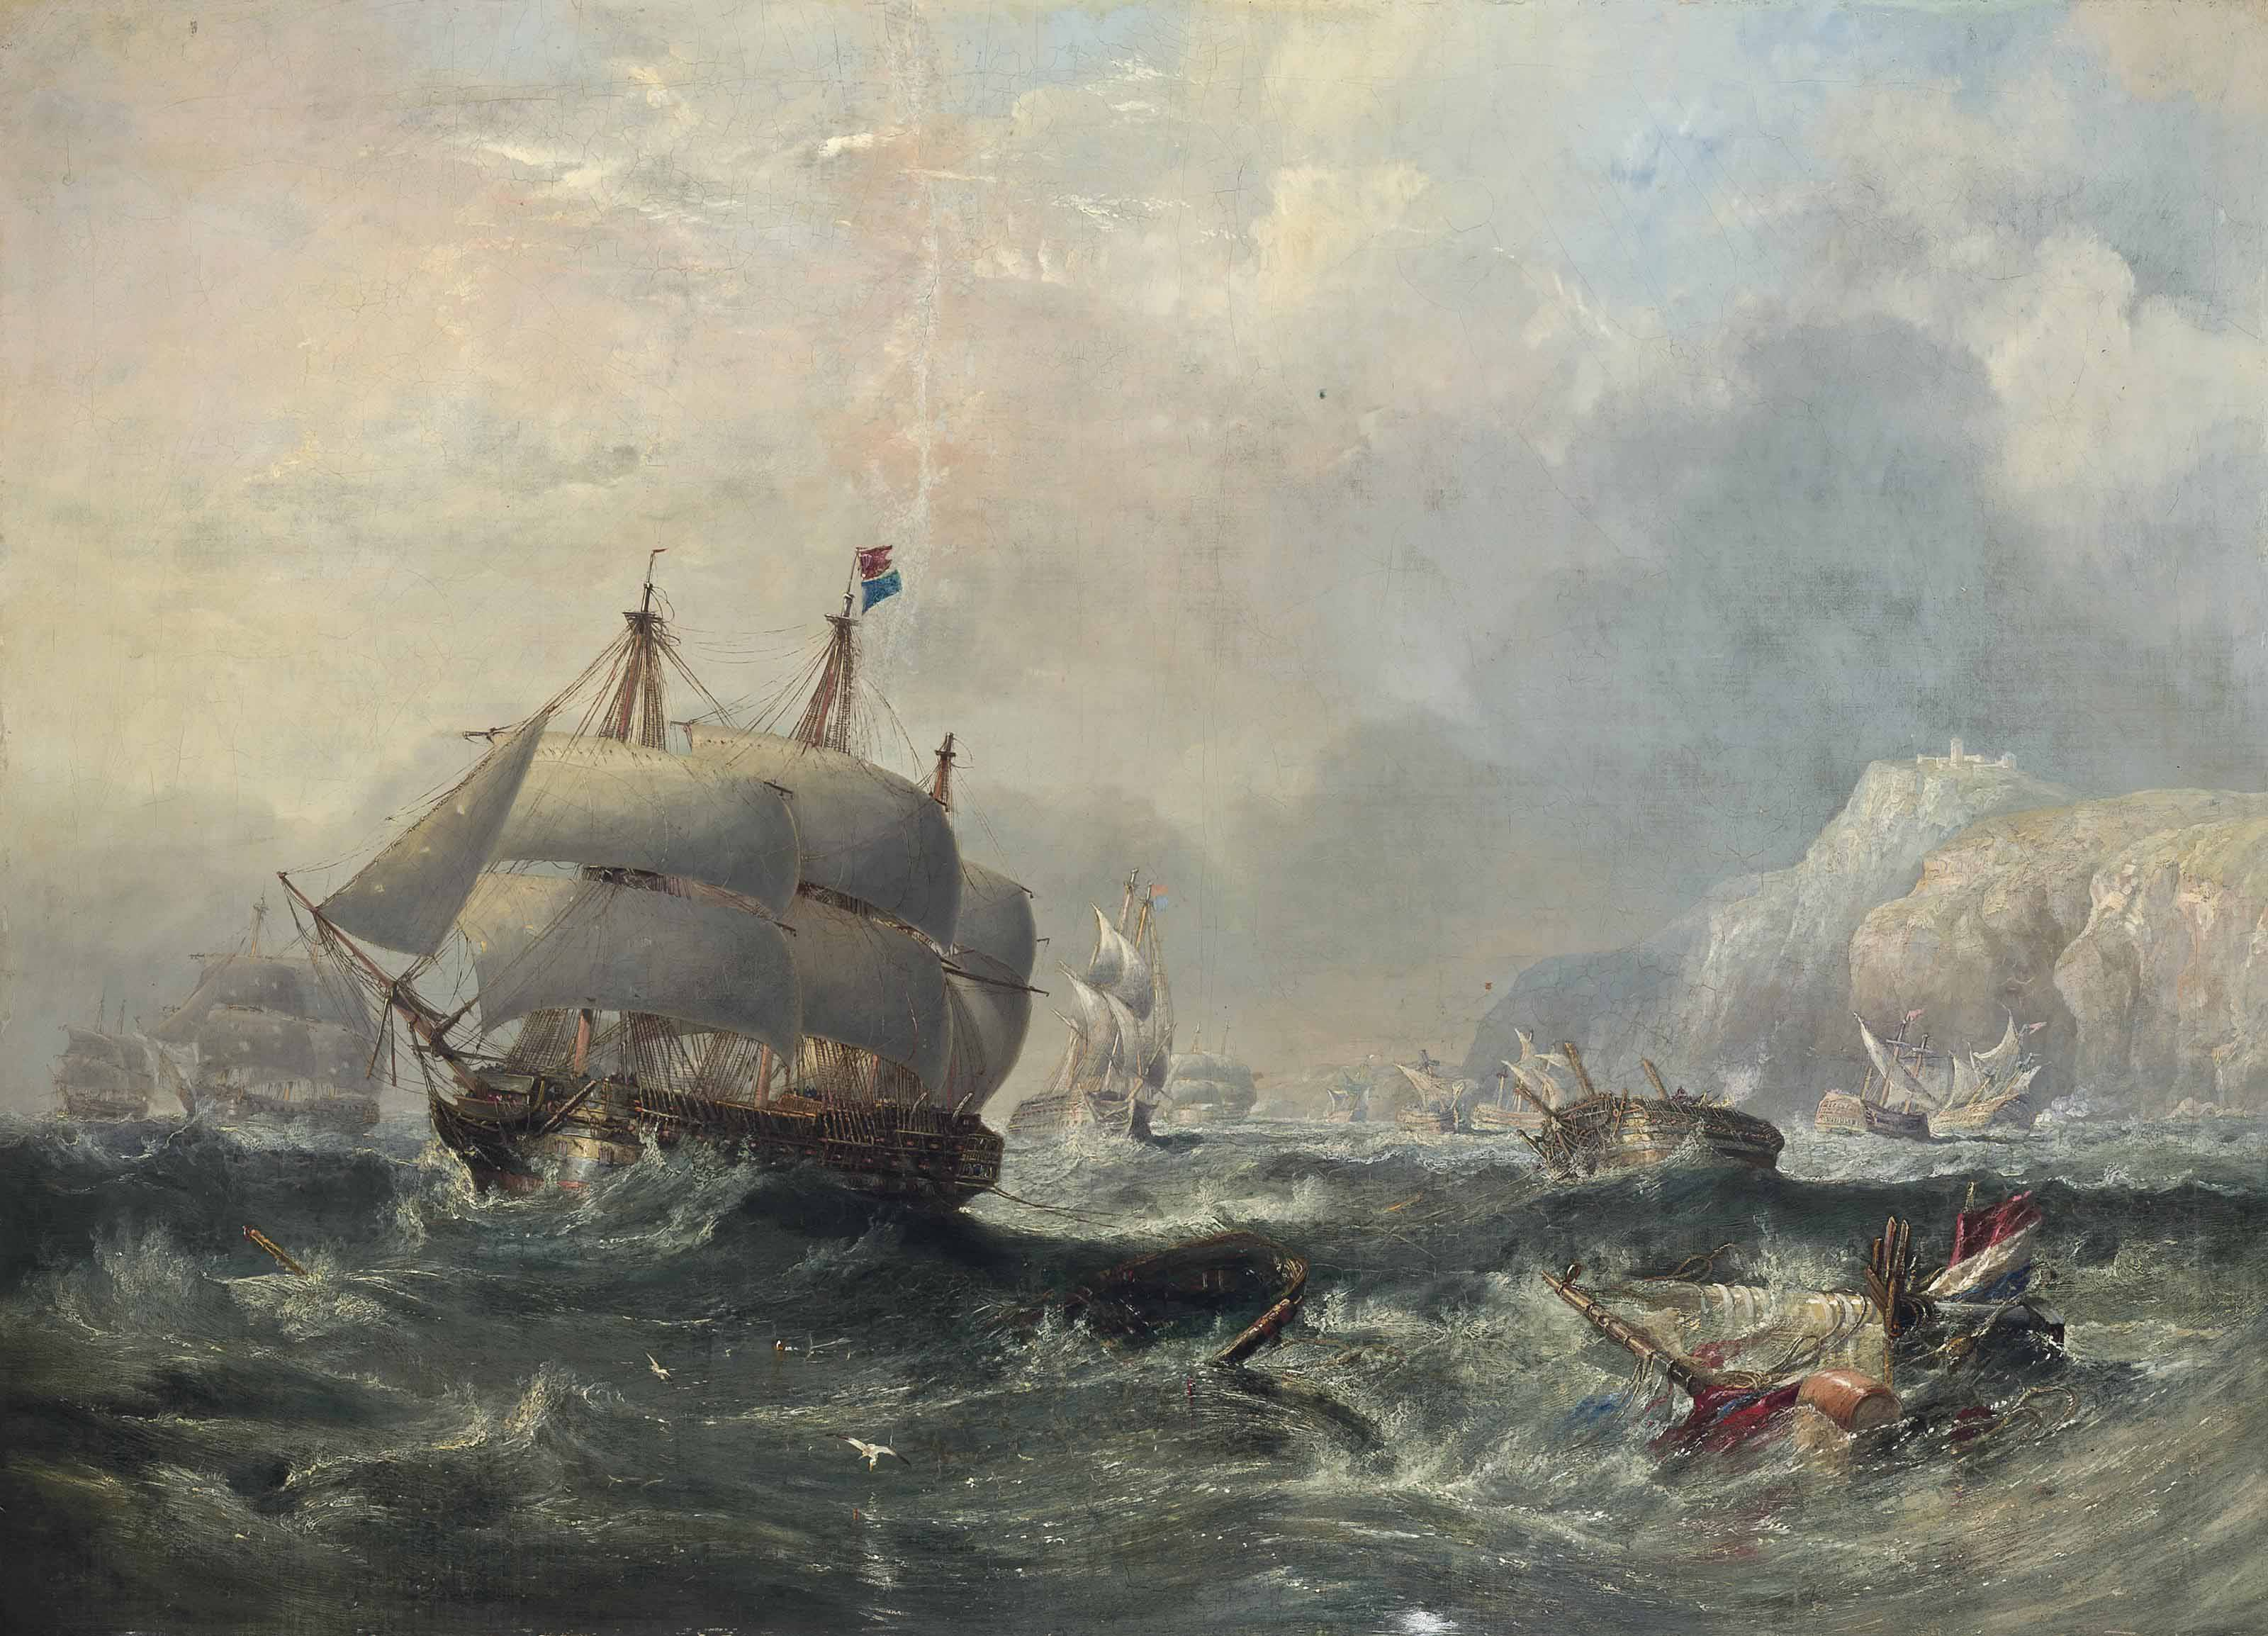 the battle of trafalgar history essay I think that it is very accurate to say that the royal navy ruled the waves during 1793-1815: they had the best, new innovative technologies, the best officers, the best blockades and – most importantly – won the battle of trafalgar.